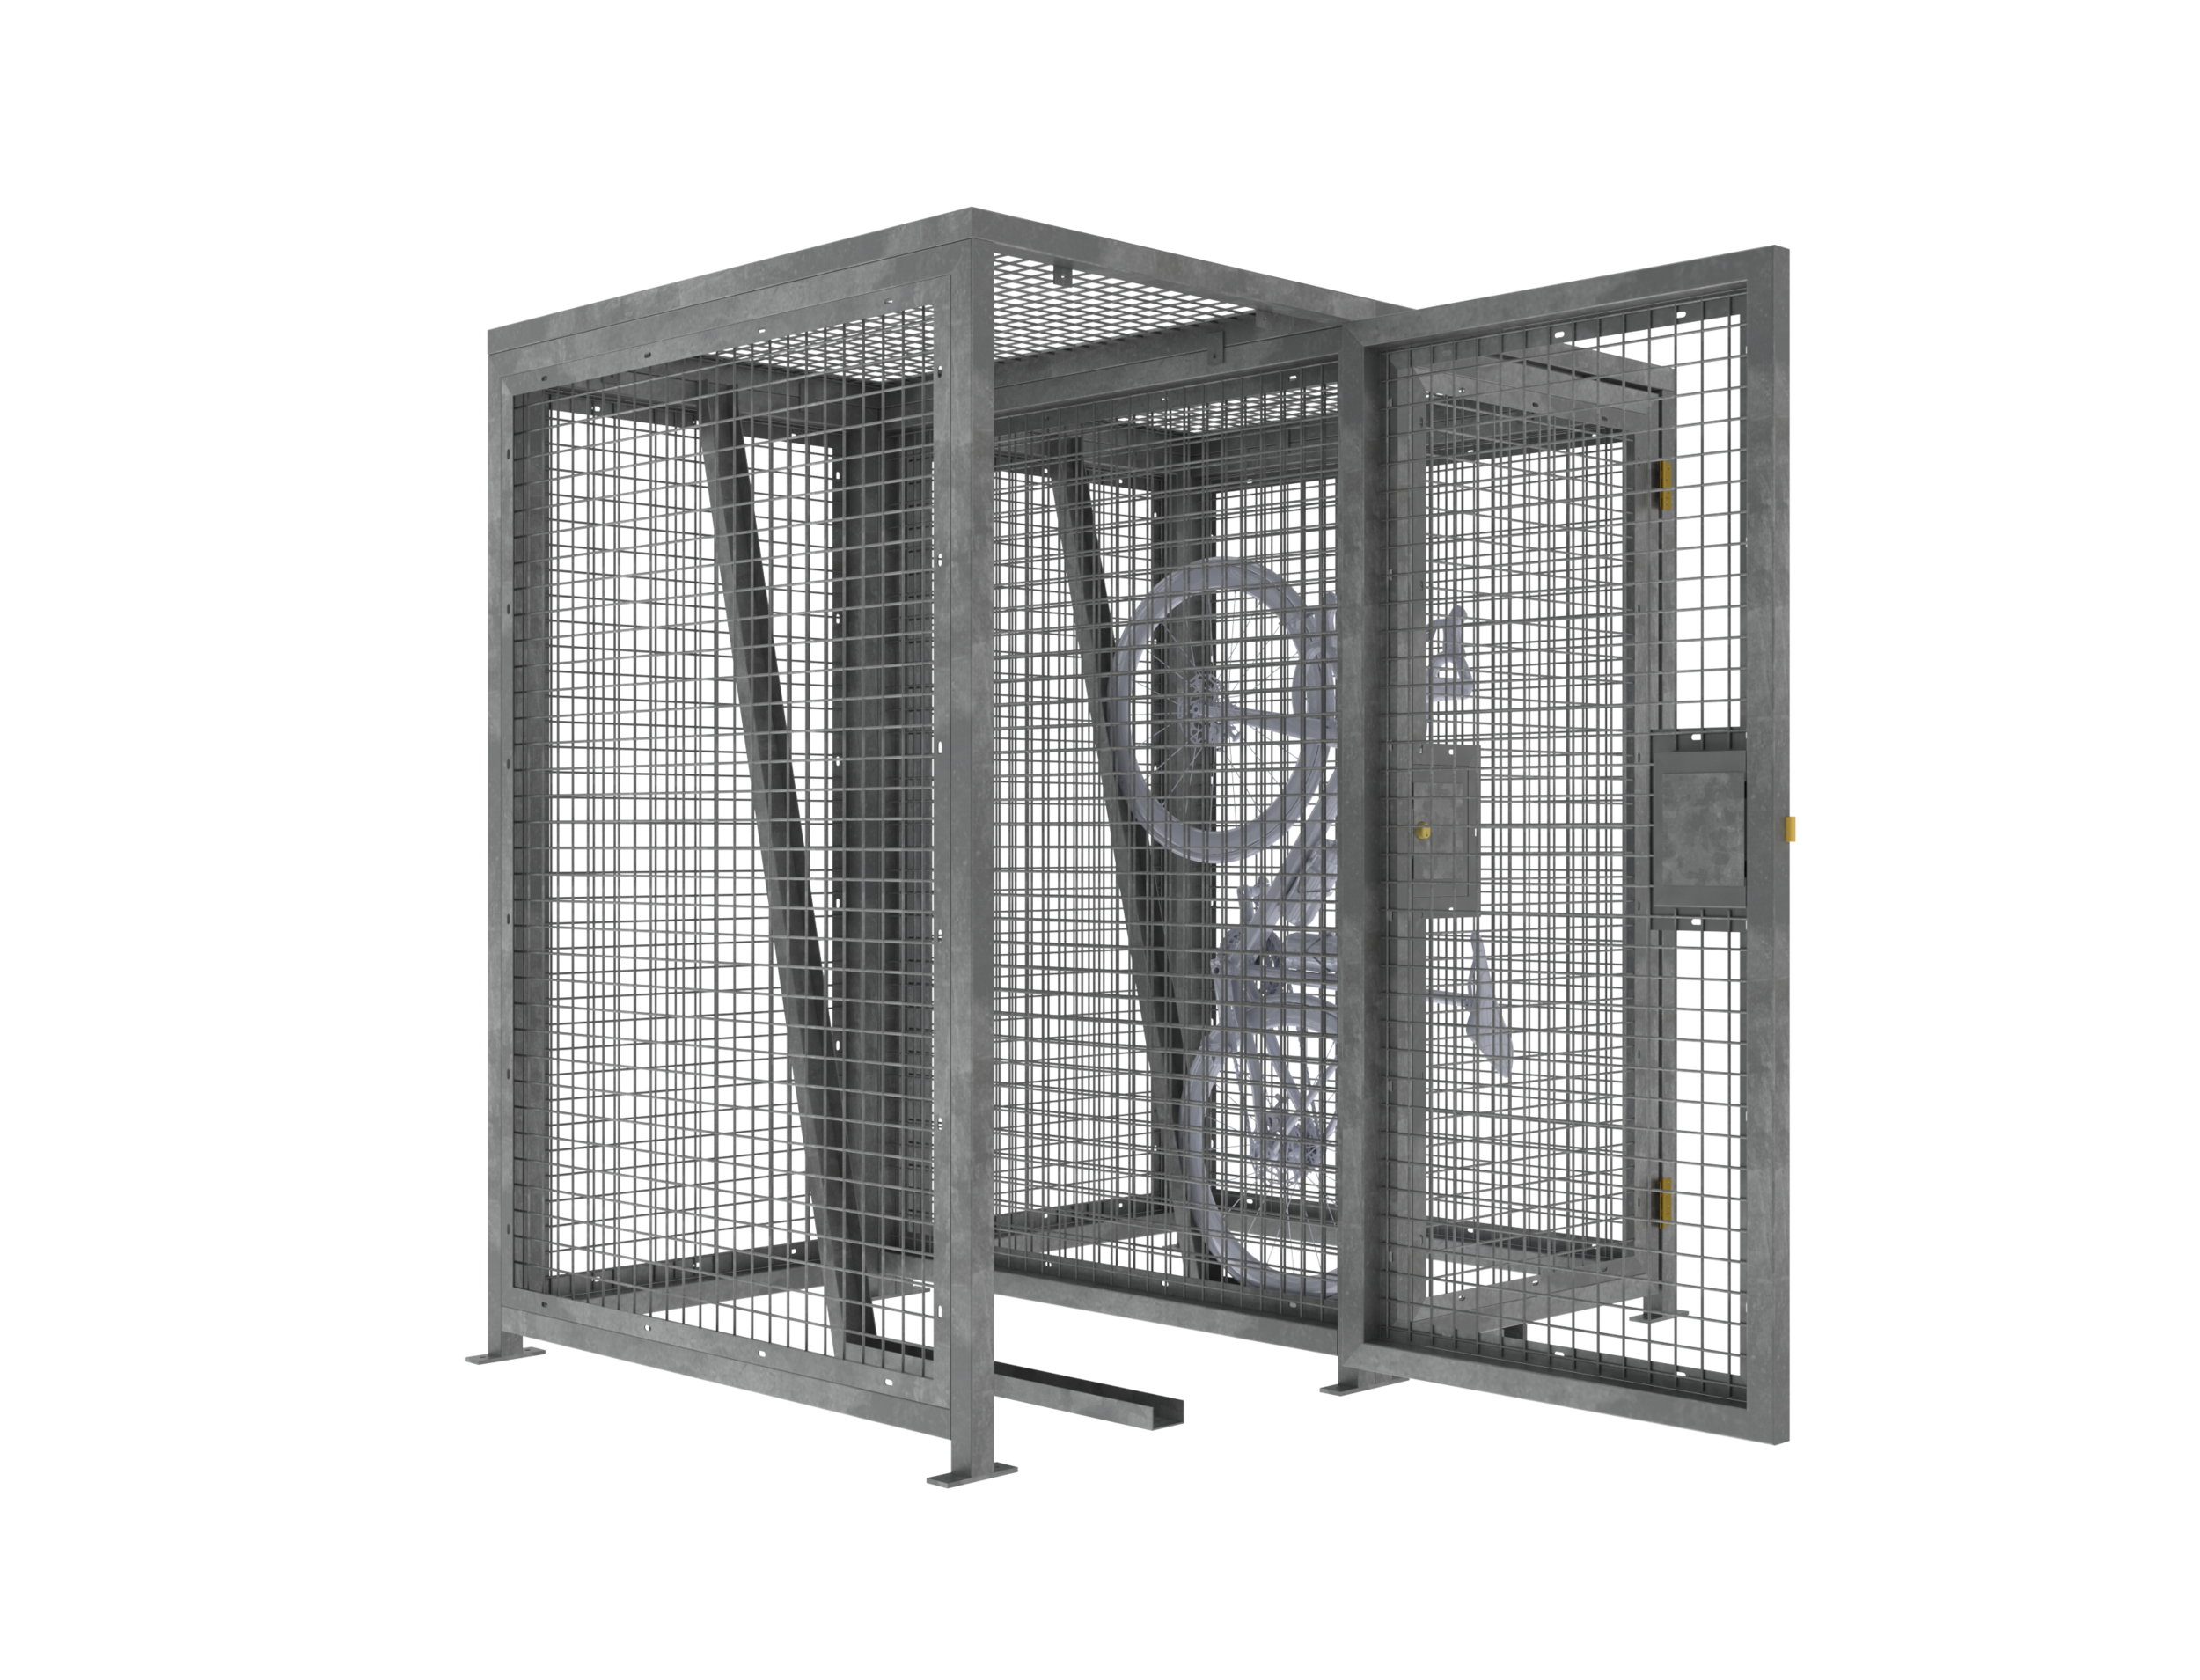 Double Bike Cage Render 1.png